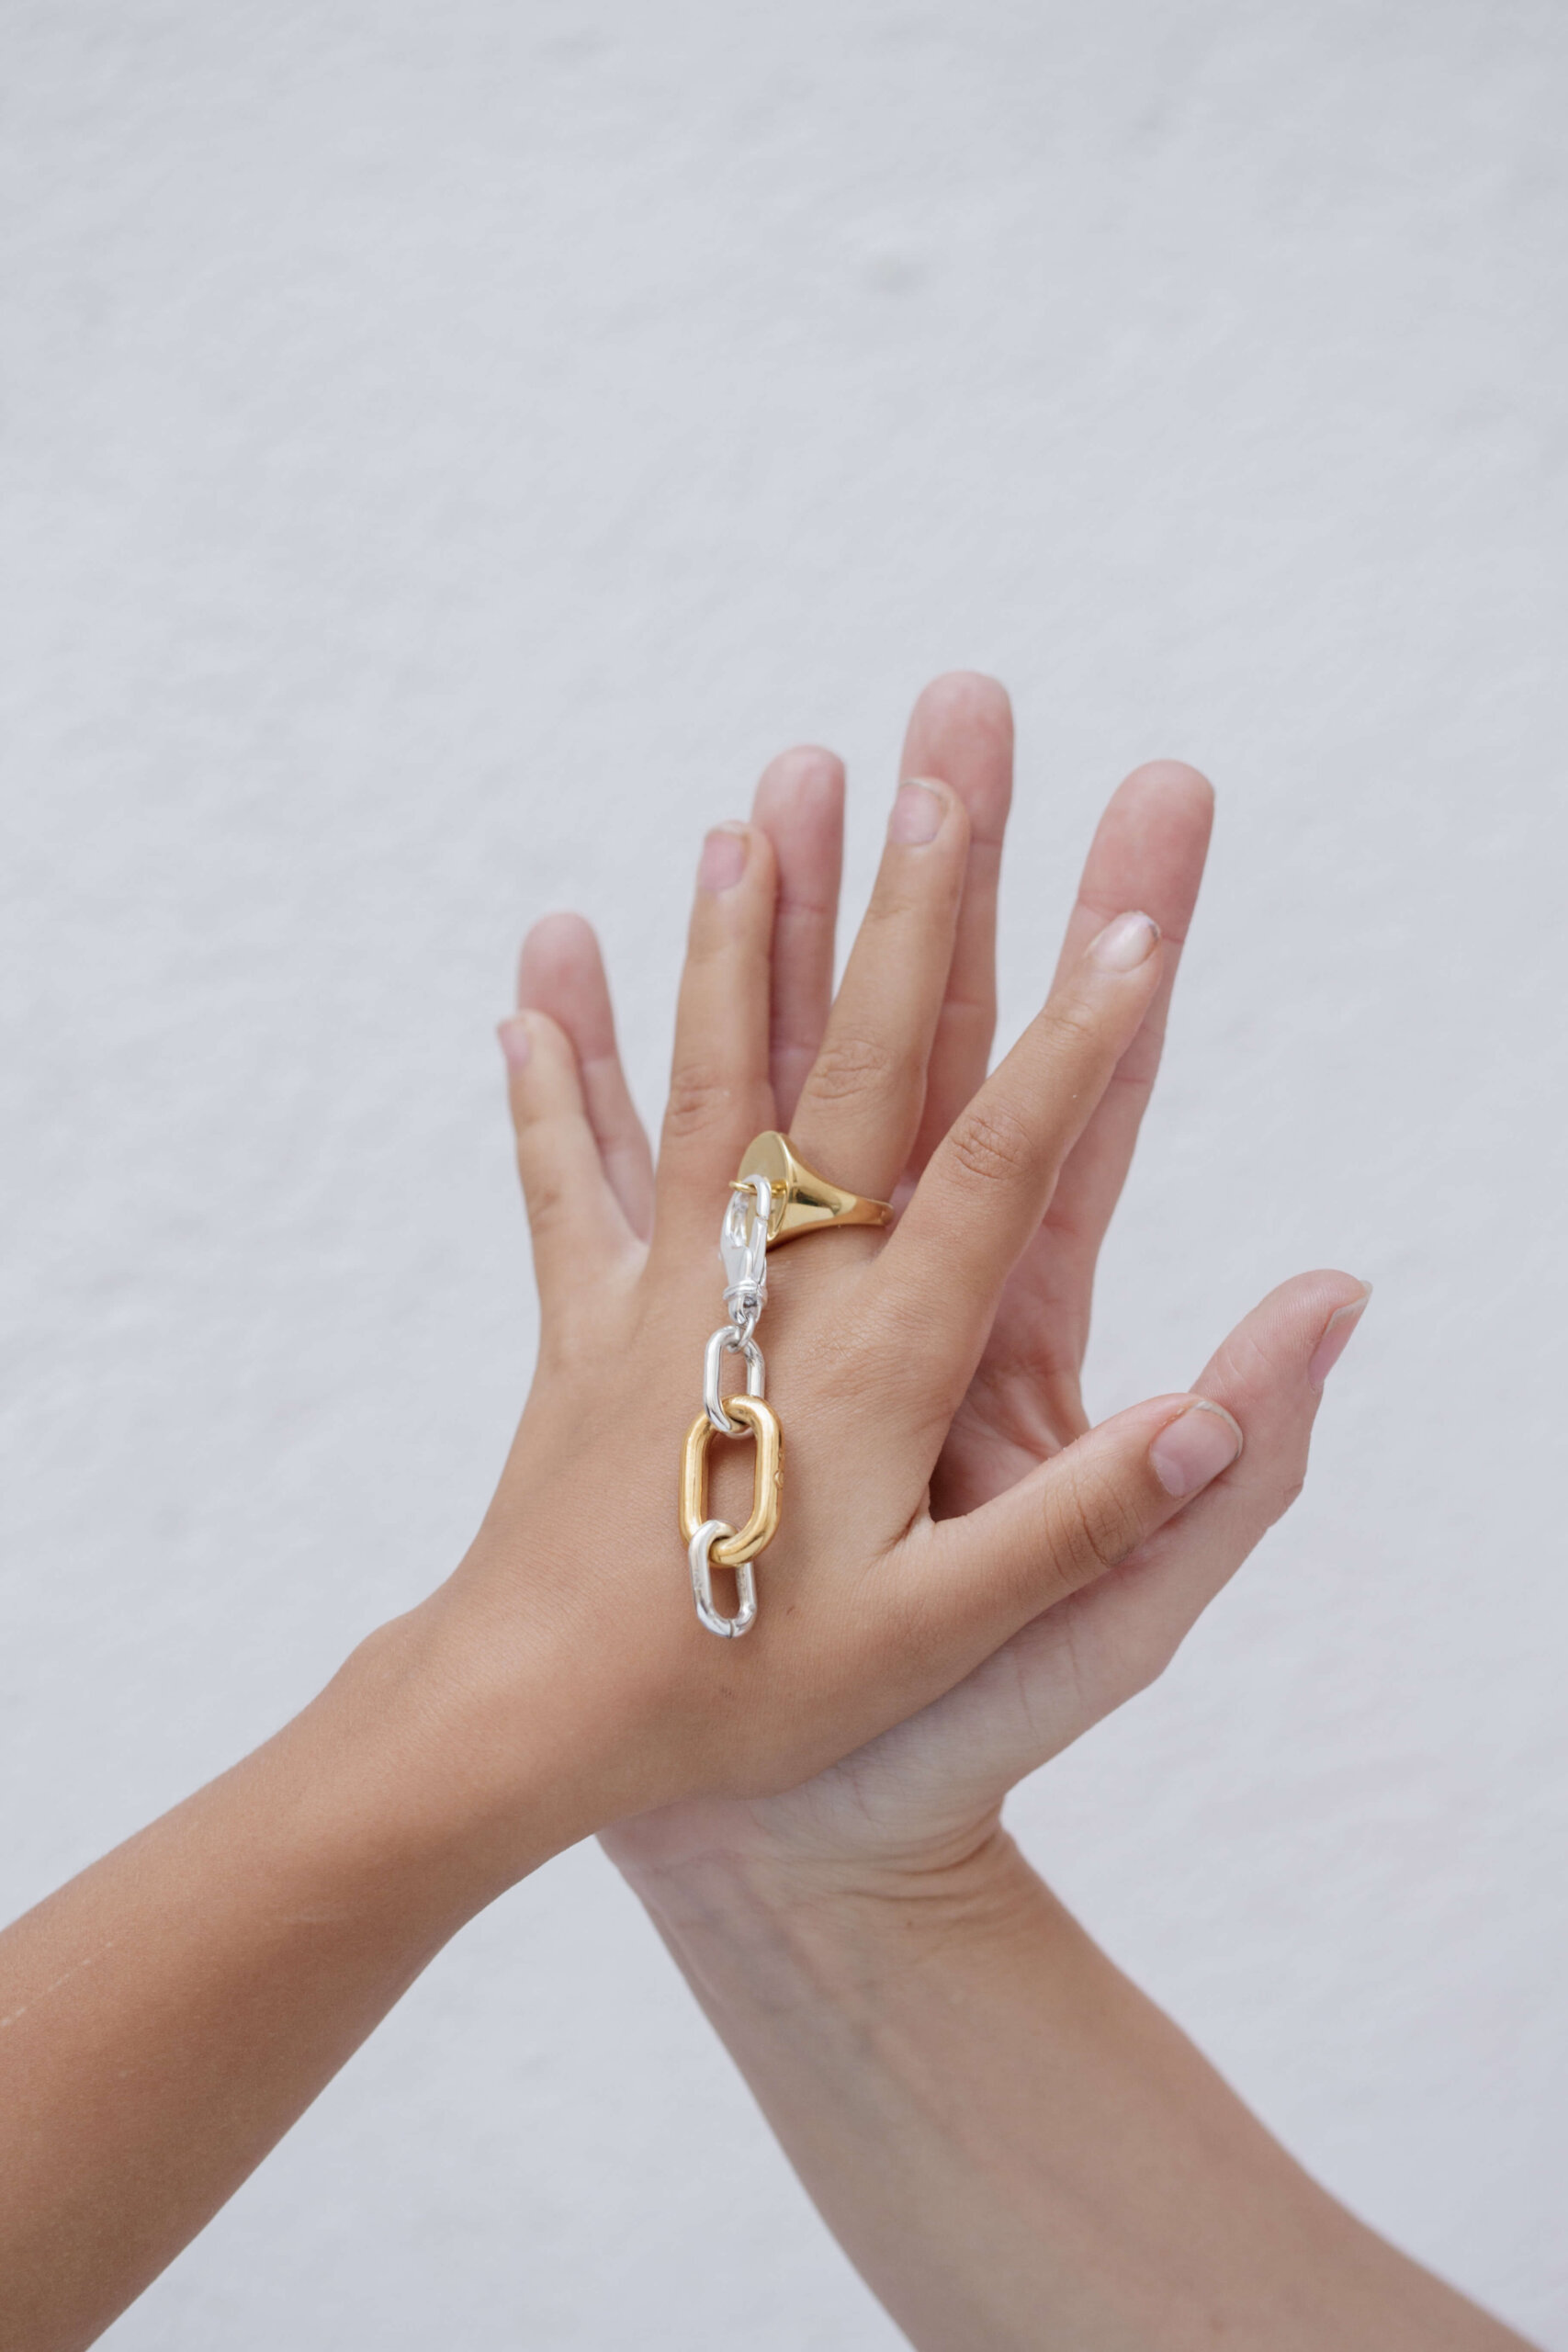 the-link-signet-ring-by-glenda-lopez-lookbook